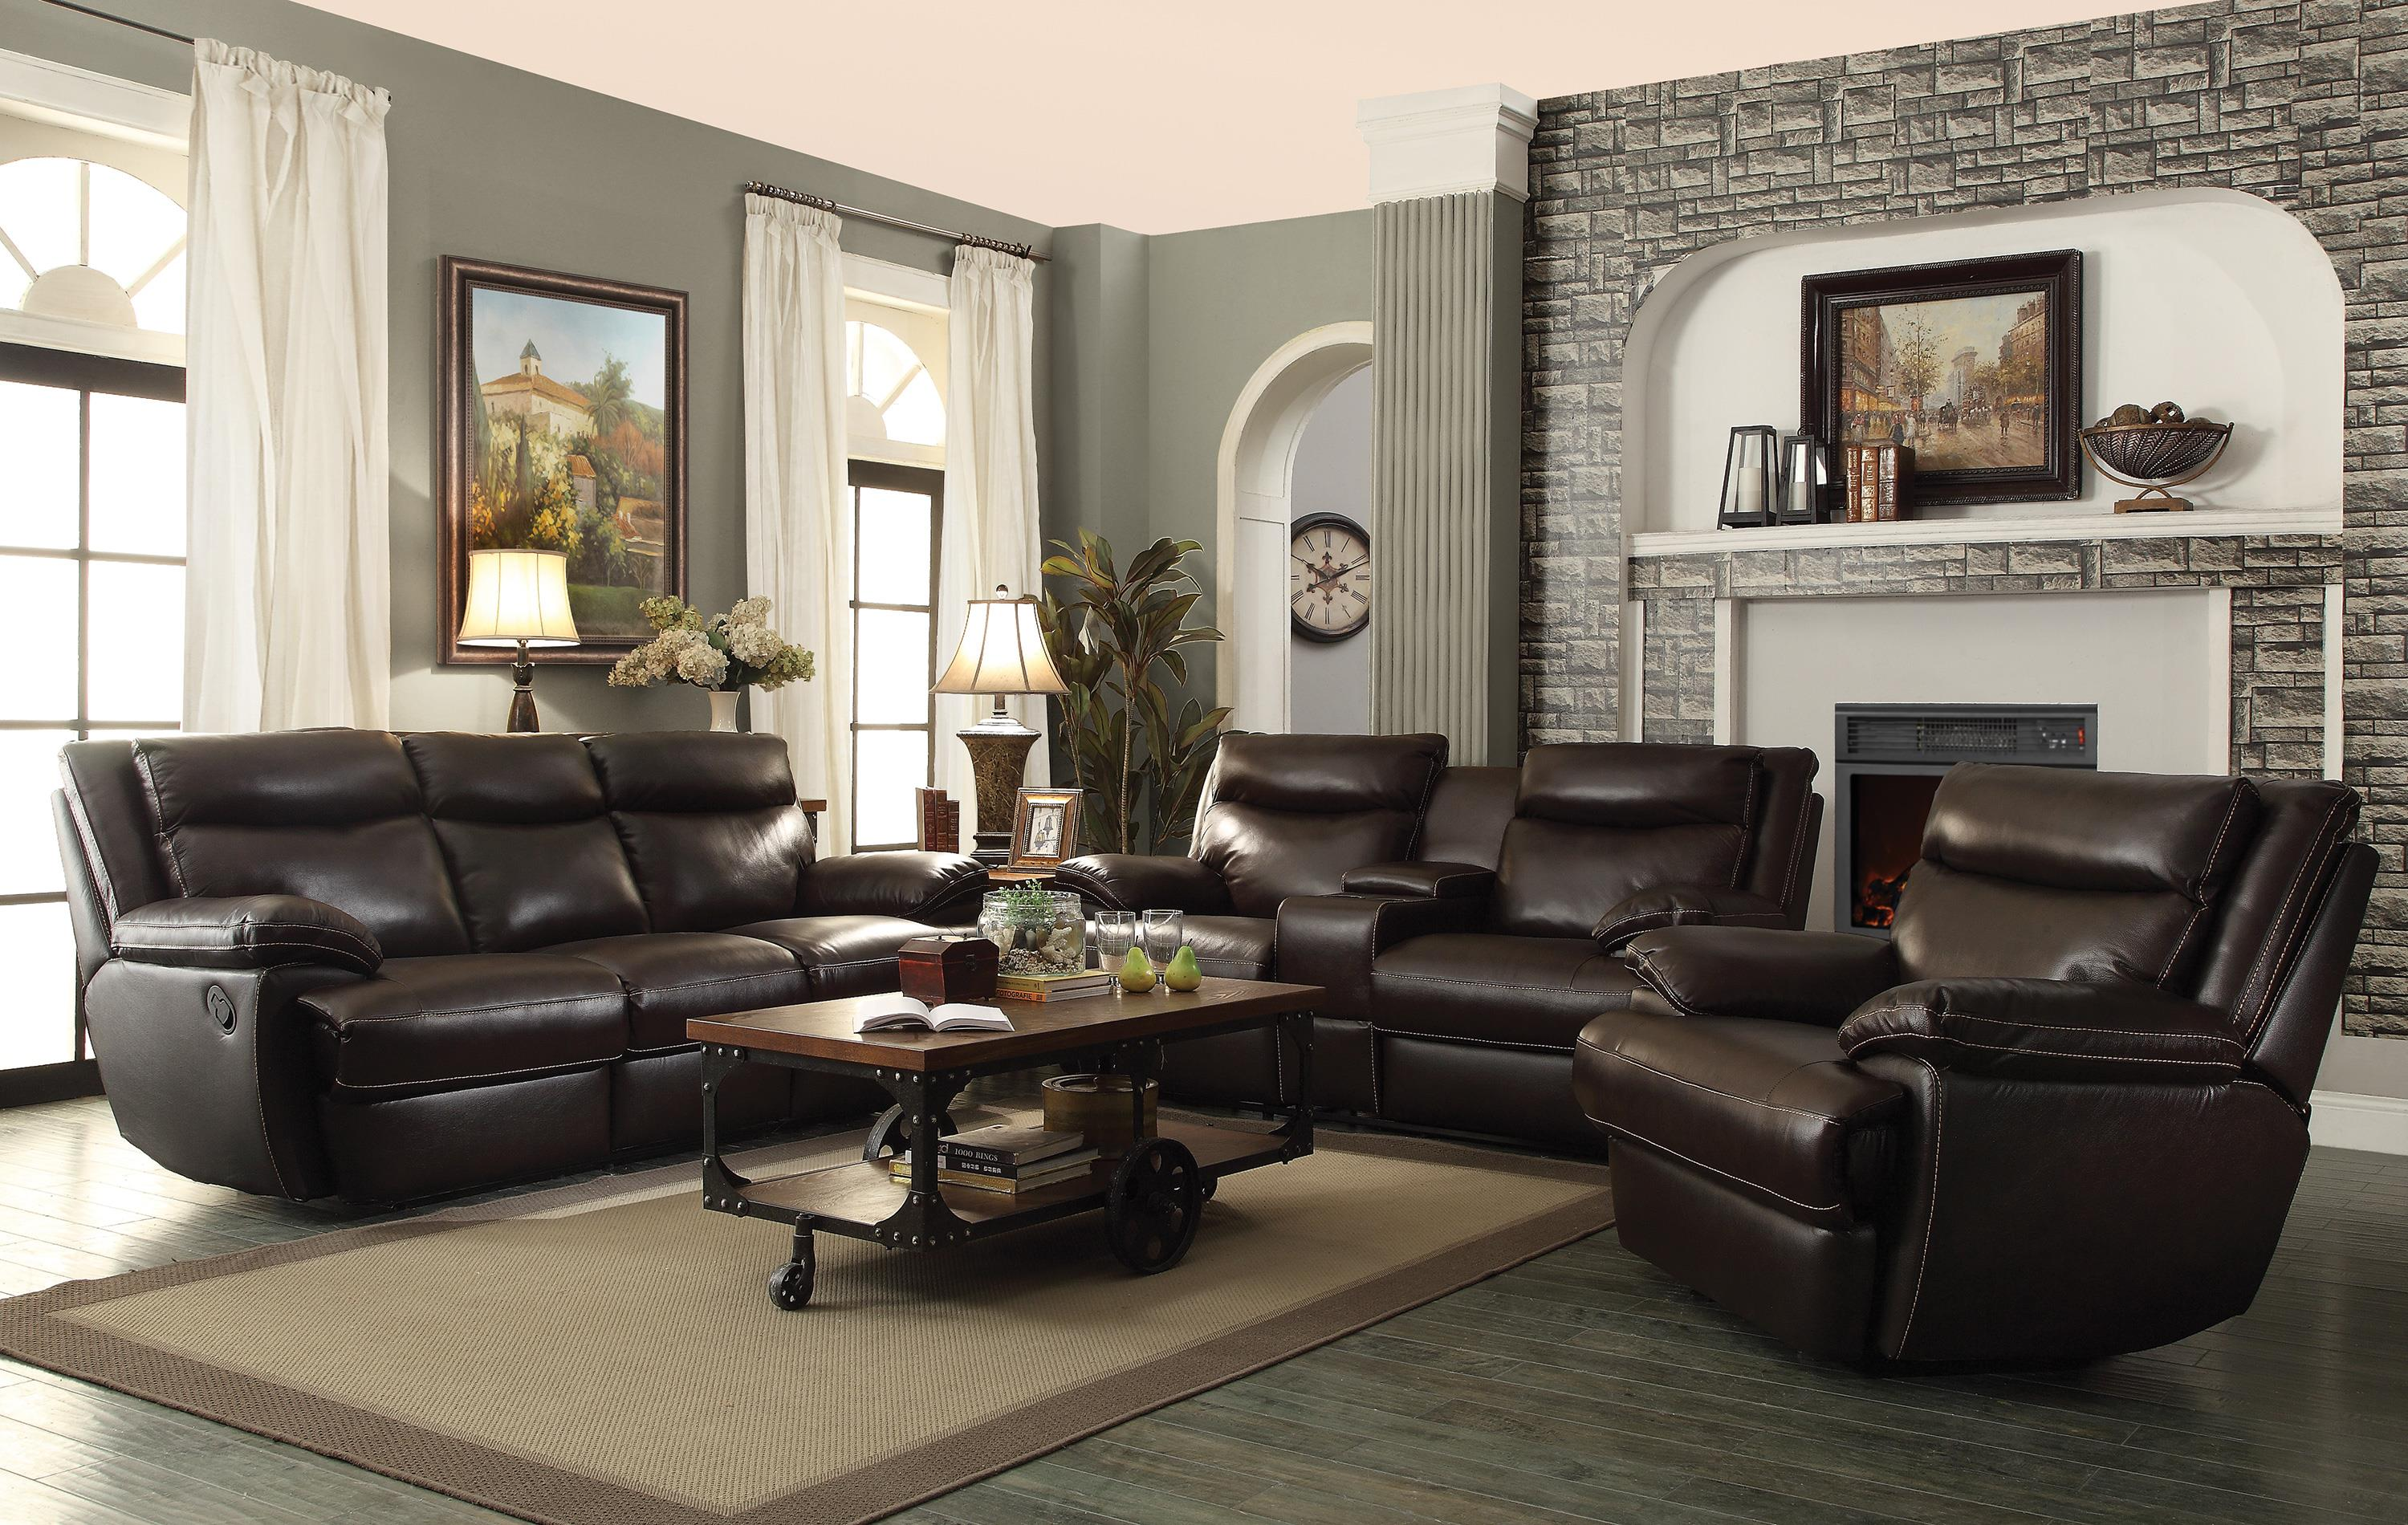 Coaster MacPherson Reclining Living Room Group - Item Number: 60181 Living Room Group 1